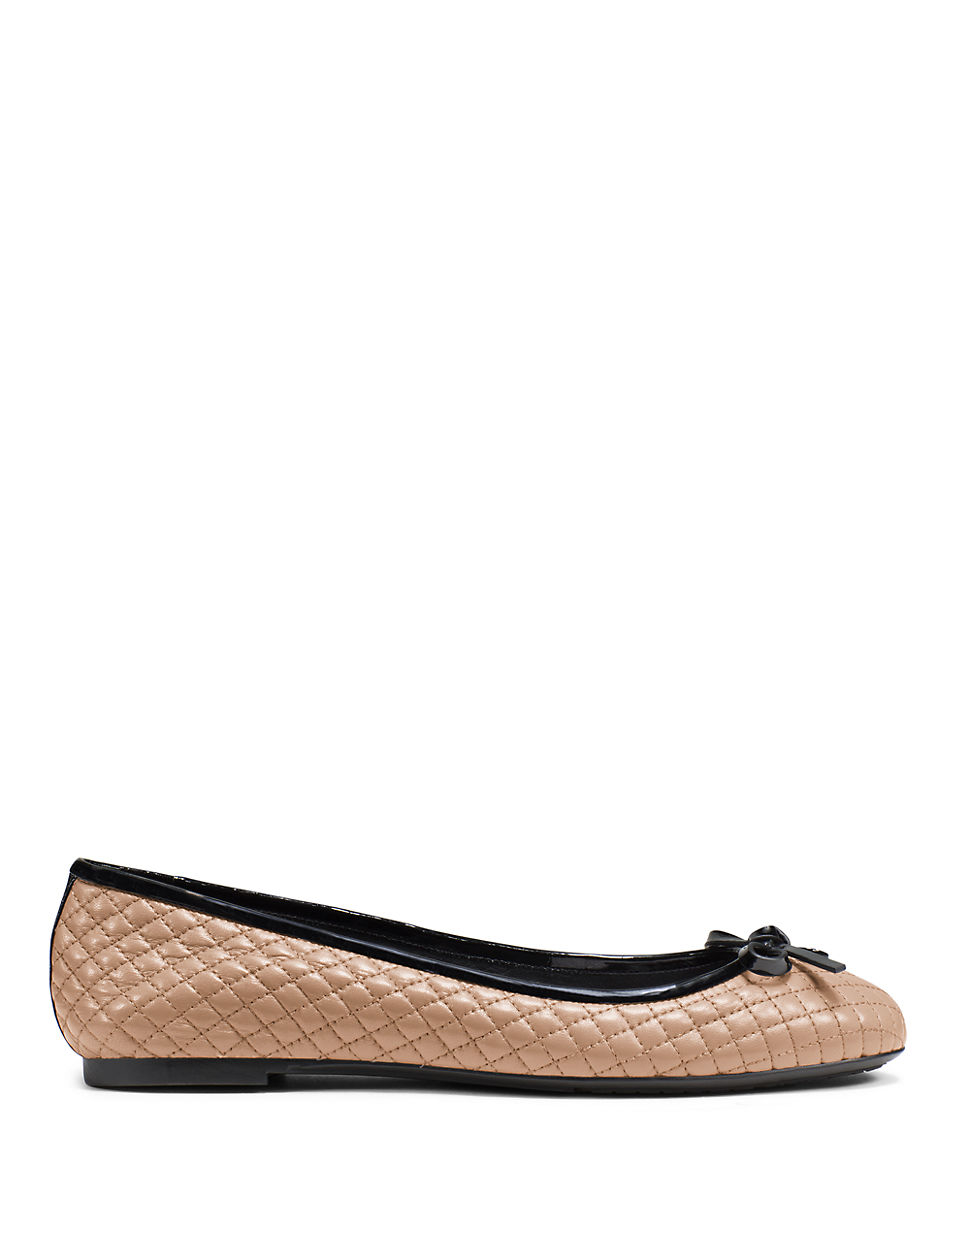 michael michael kors melody quilted leather ballet flats in natural lyst. Black Bedroom Furniture Sets. Home Design Ideas